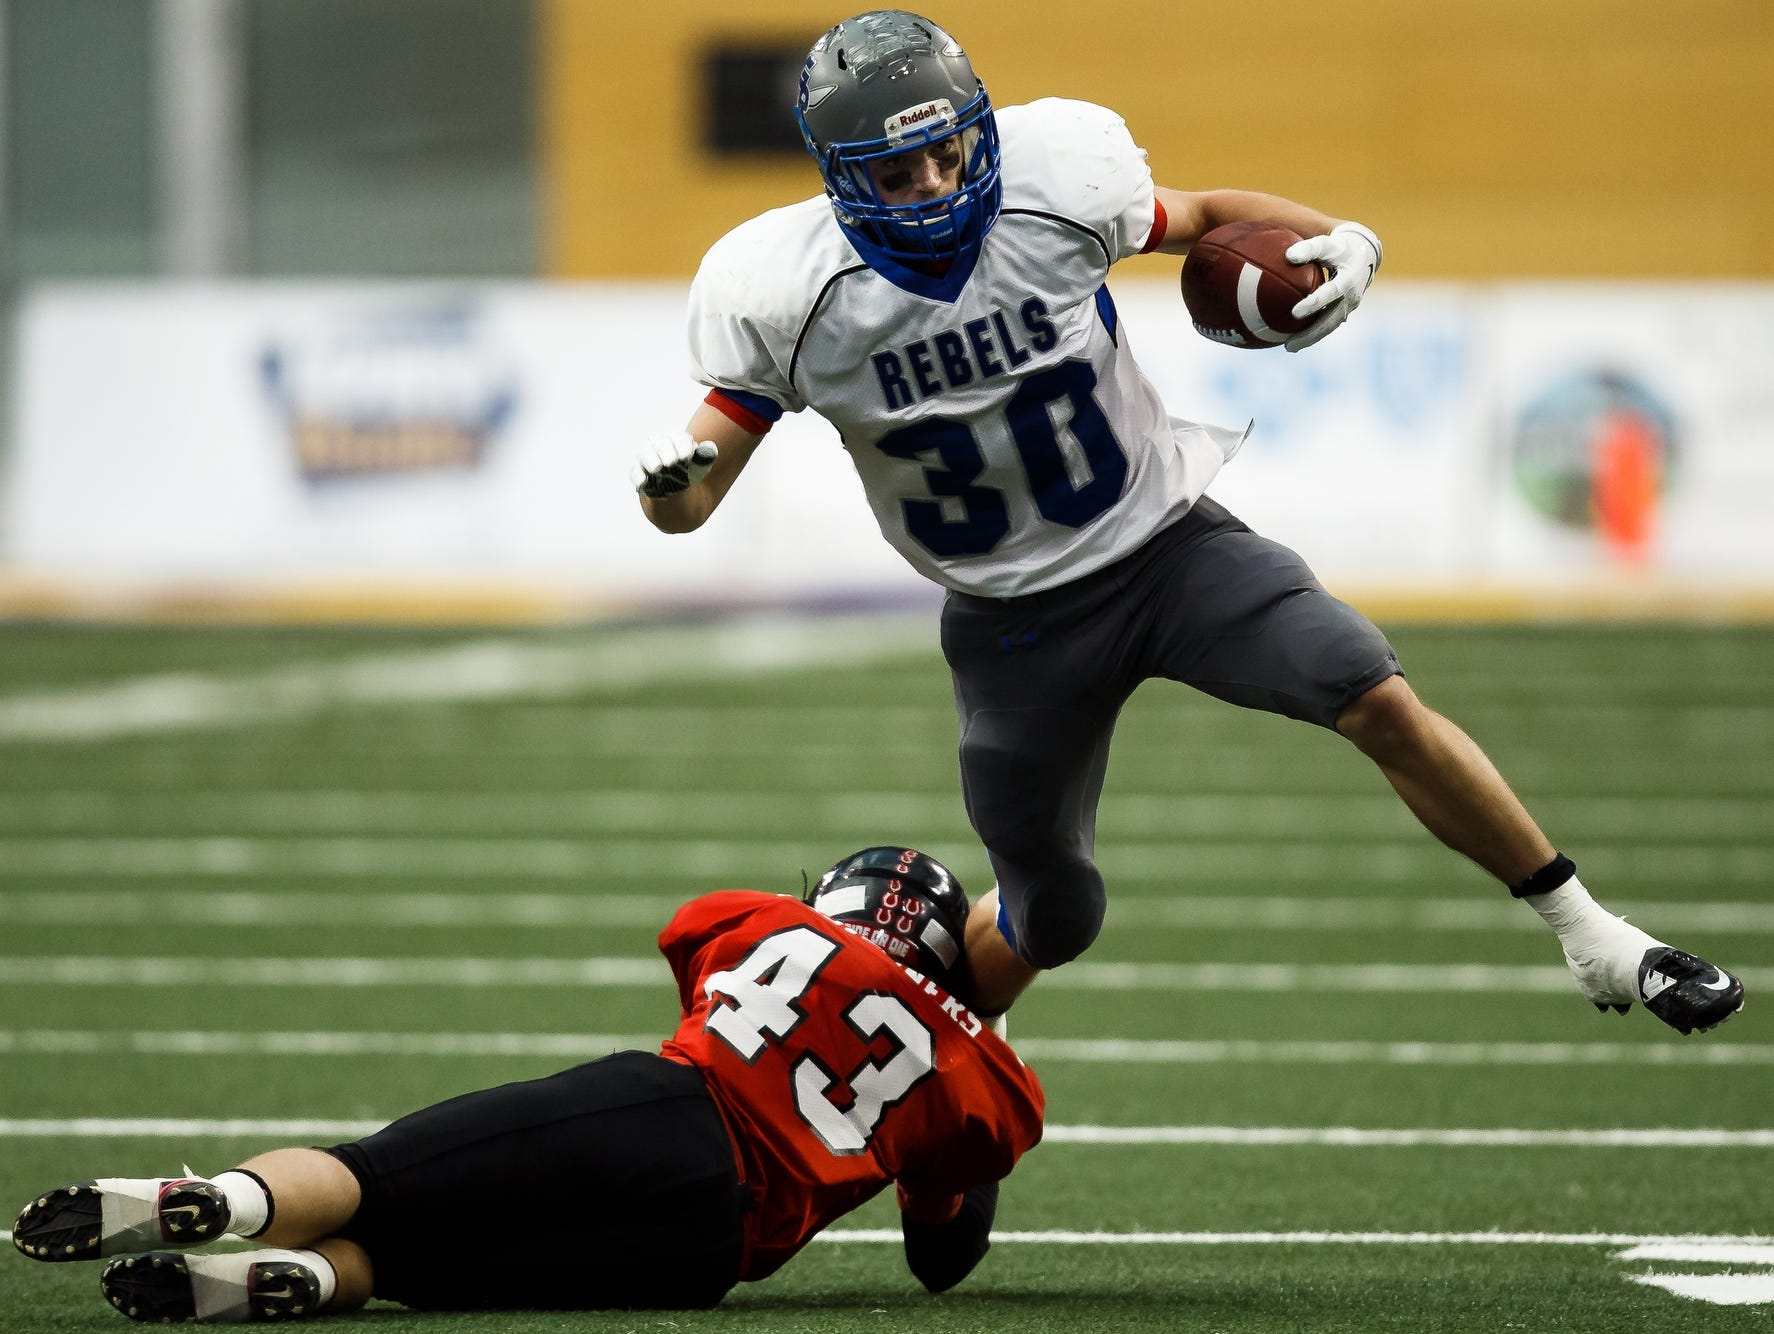 Gladbrook-Reinbeck's Eric Stoakes tries to break a tackle in the Class A state championship. Stoakes rushed for a record 282 yards.